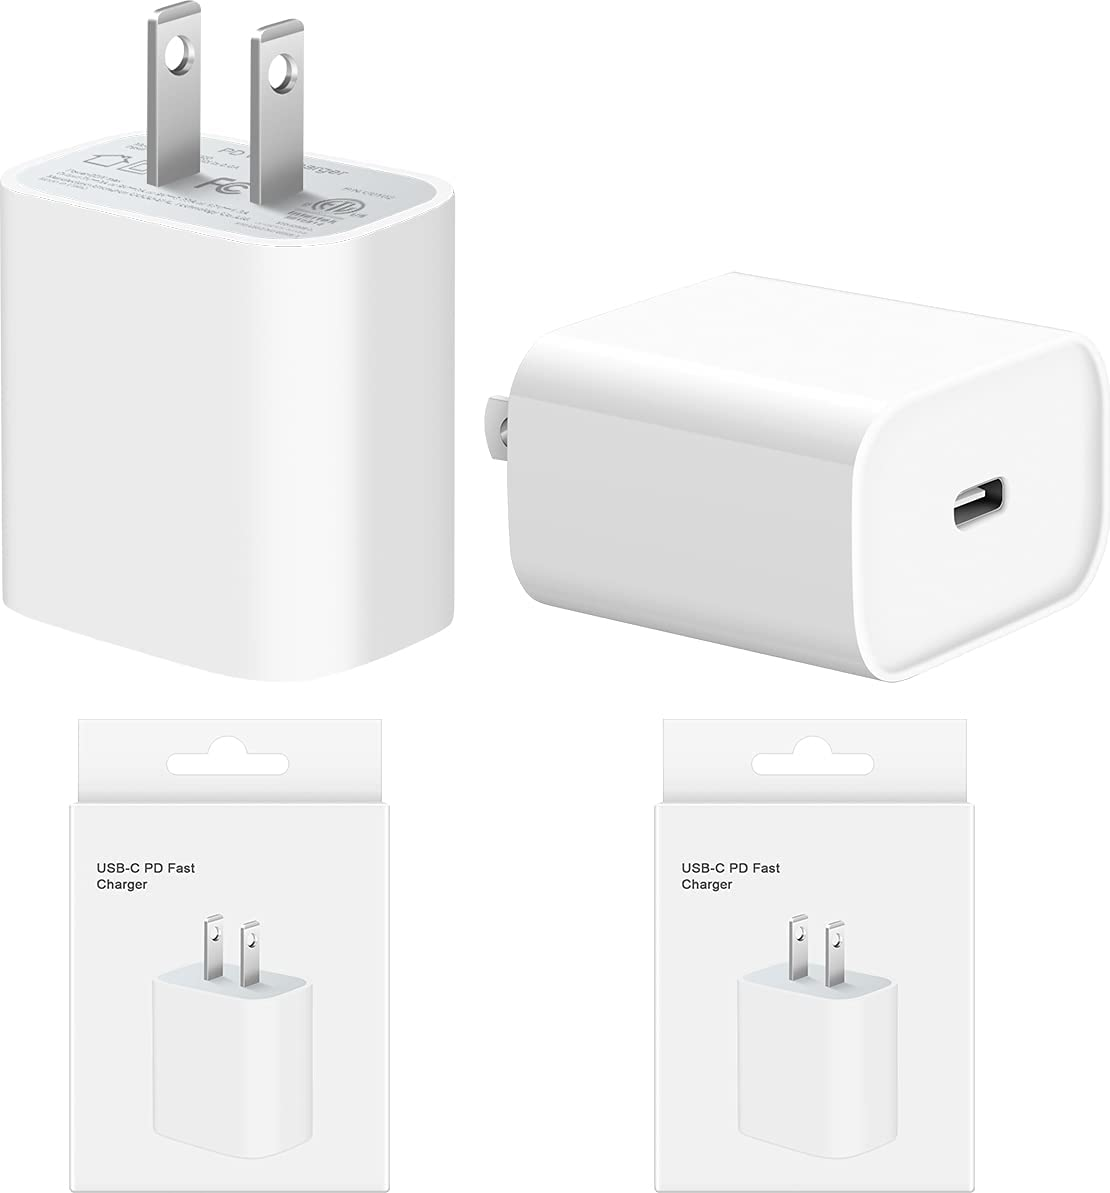 iPhone Fast Charger [2 Pack] 20W USB C Wall Charger PD 3.0 Adapter for iPhone 12/12 Mini/12 Pro/12 Pro Max/11 pro max, iPad Pro 2020, Google Pixel 4/3, Samsung Galaxy S10 S9 and More